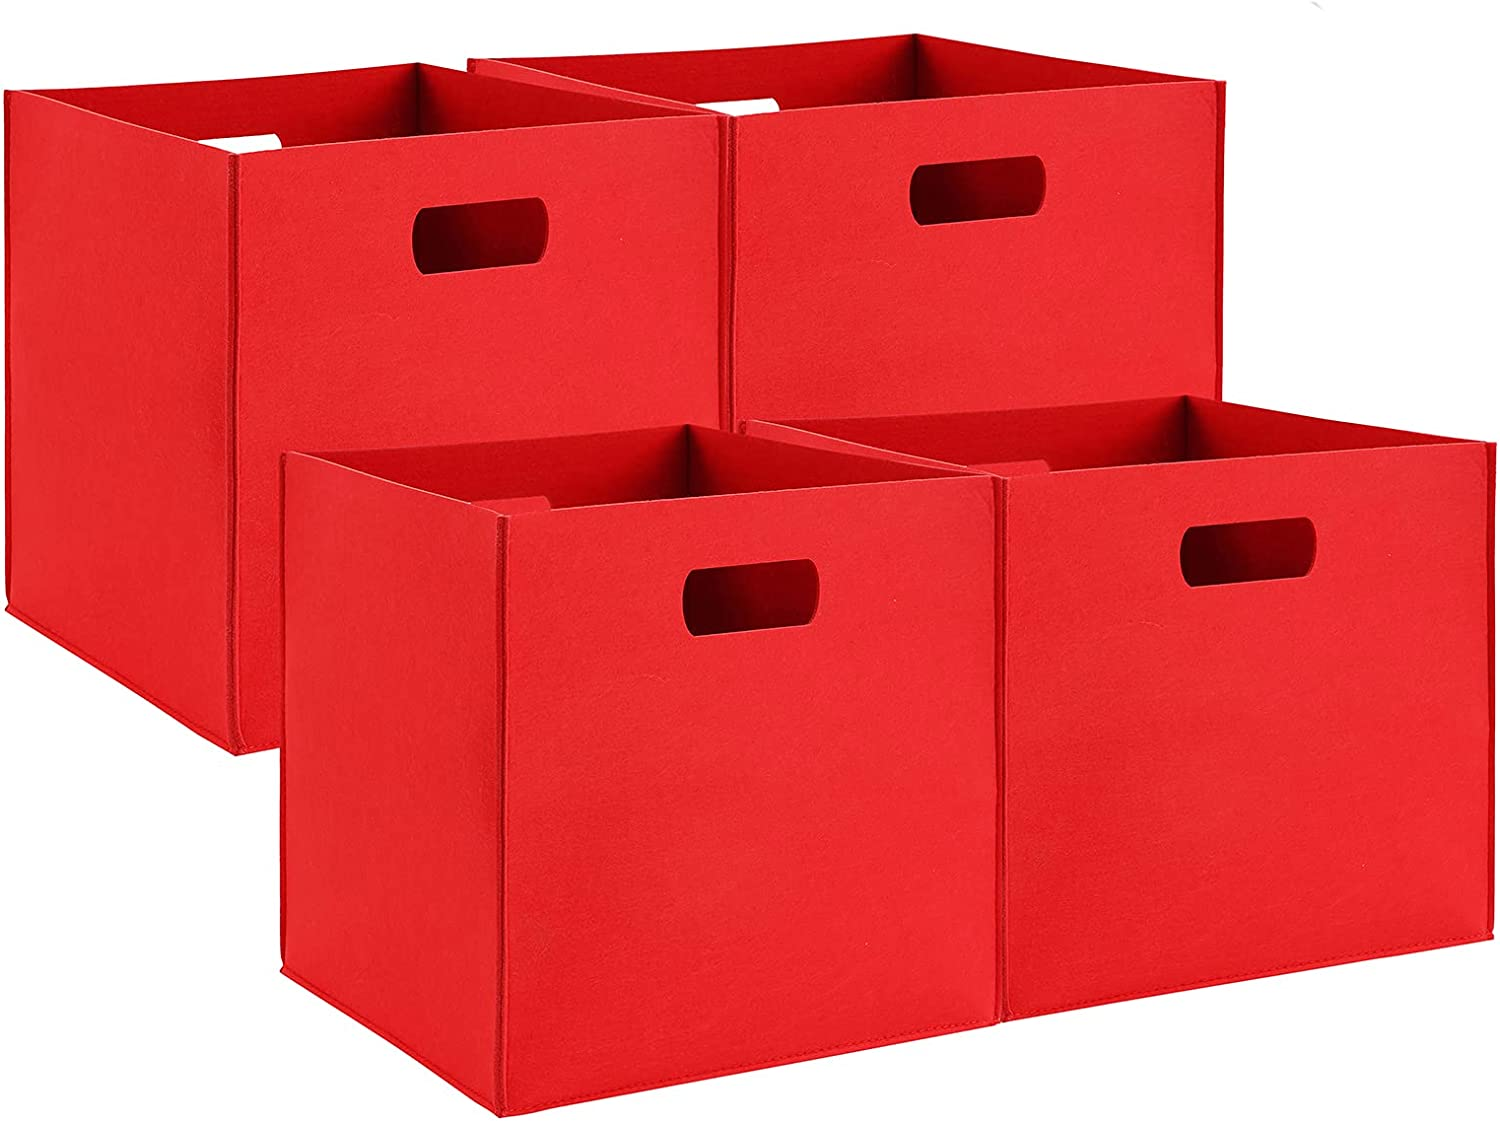 ckuscapo Foldable Felt Storage Cubes Bins Set of 4 | Cube Storage Bins | 12×12×12 inch Storage Baskets,Used for Closet Organizers, Clothes and Toys(Red)